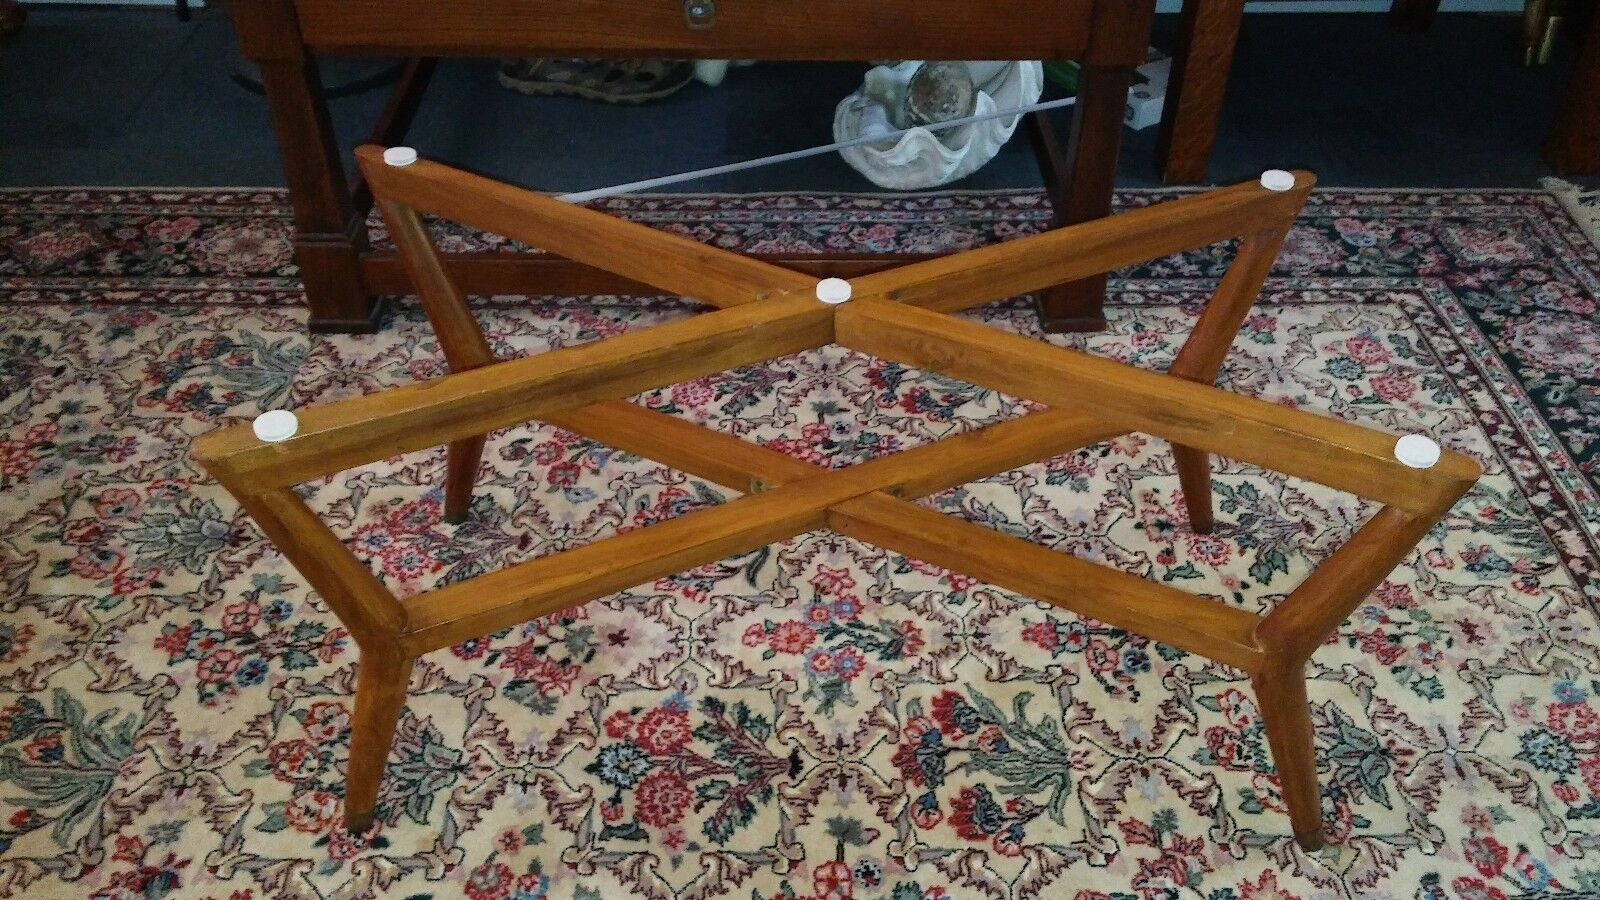 41 Oval Mid Century Etched Brass Tray Coffee Table With Folding Spider Legs Picclick